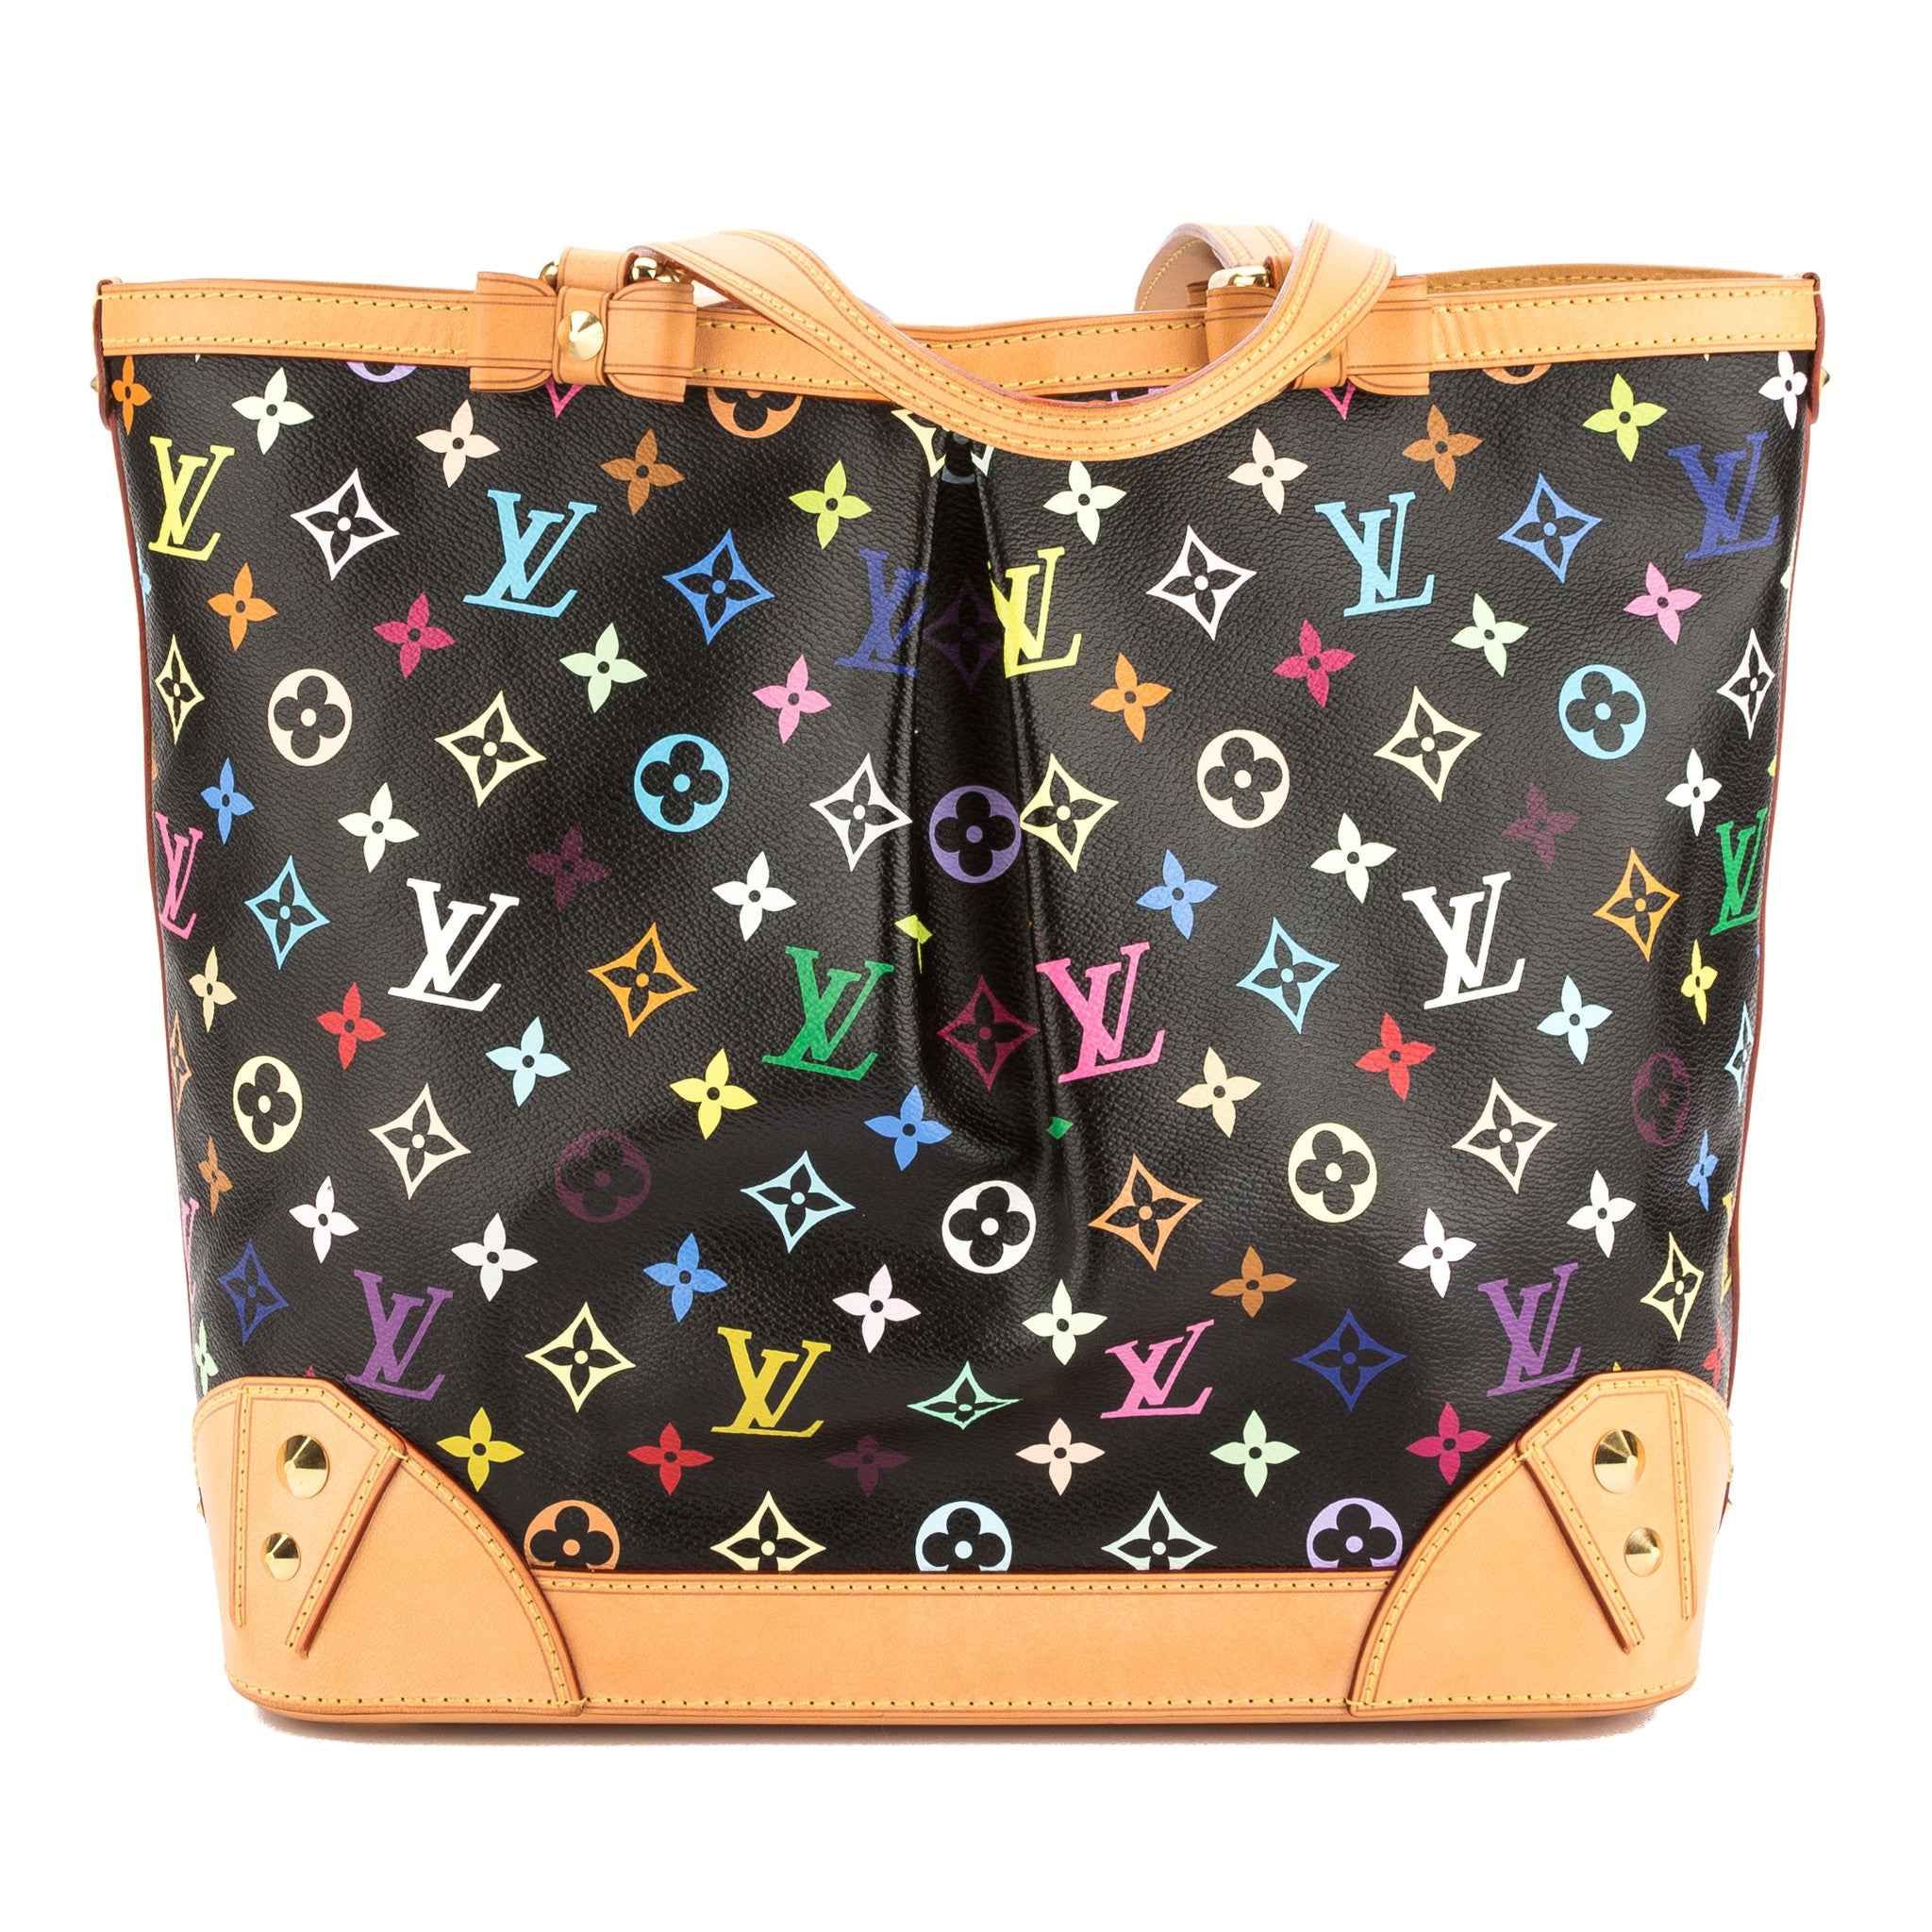 695e9b846169 Louis Vuitton Black Monogram Multicolore Sharleen MM Bag (Pre Owned ...